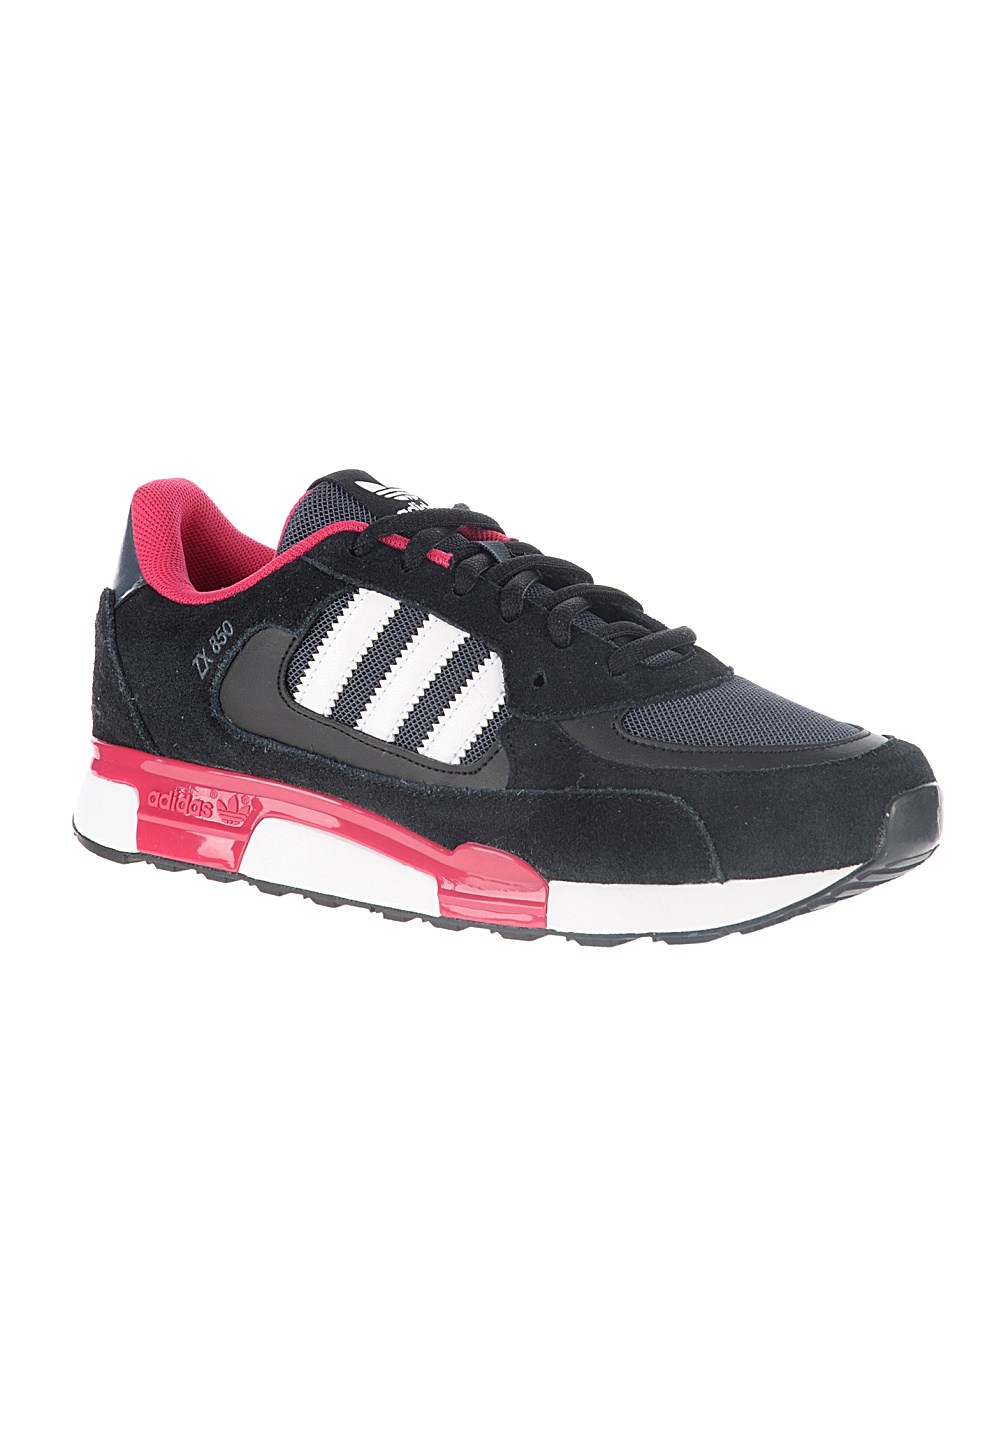 check out 6396d 565c9 Buy cheap Online - adidas zx 850 womens silver,Fine - Shoes ...